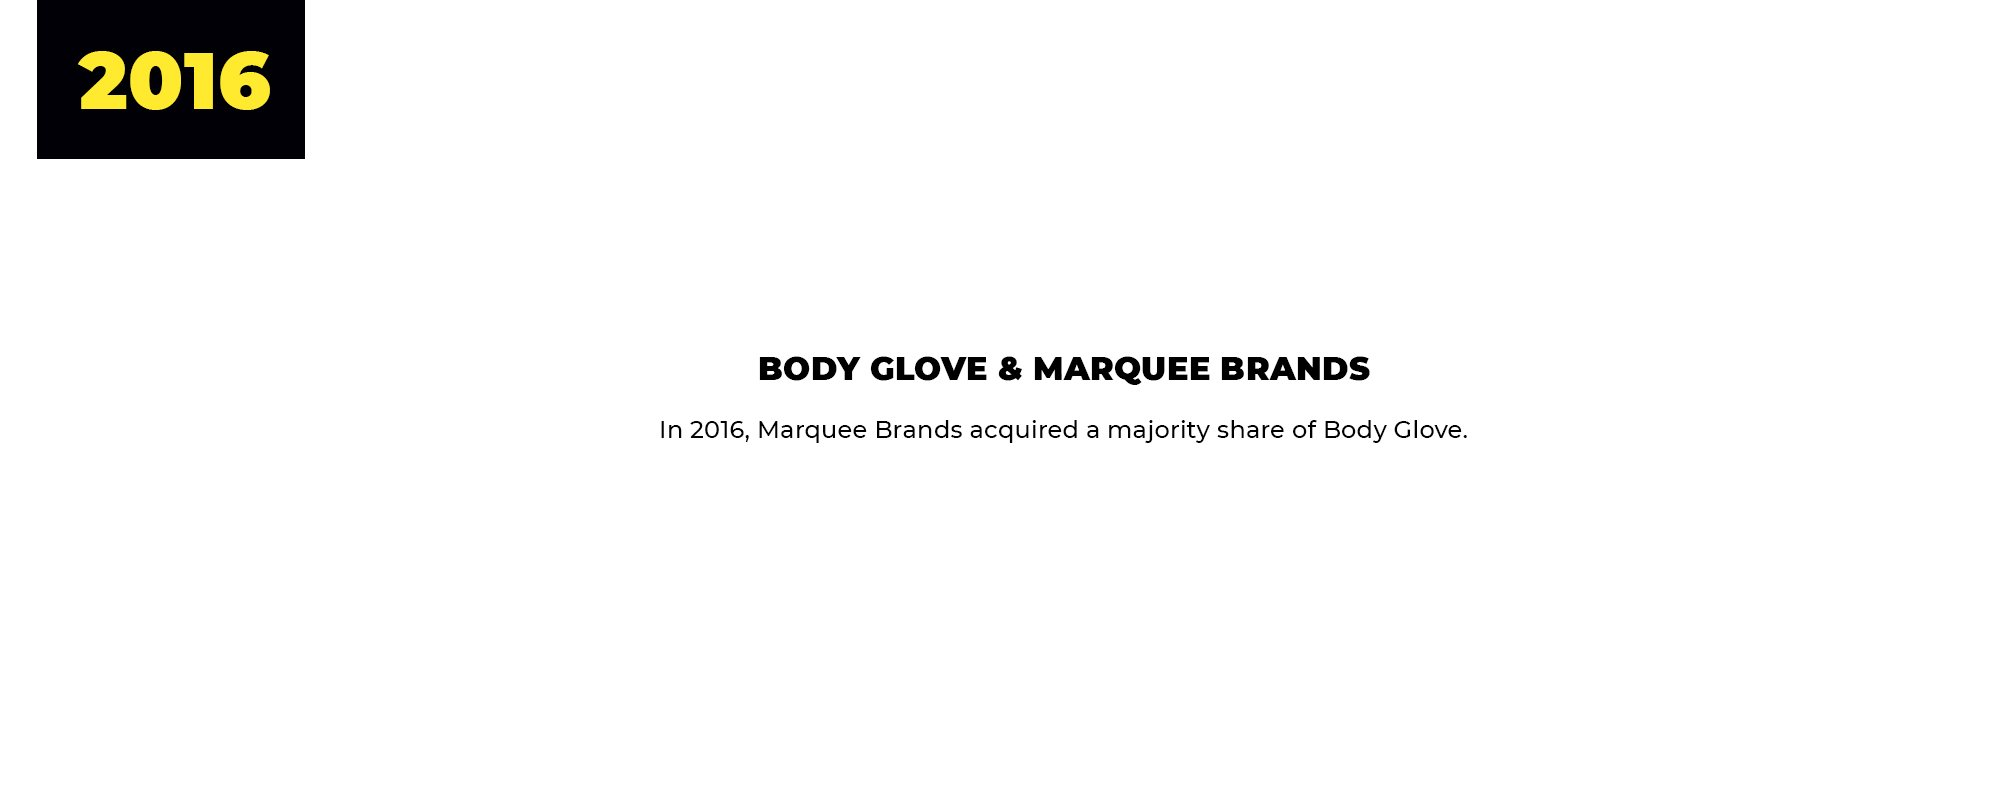 2016 | Body Glove & Marquee Brands | In 2016, Marquee Brands acquired a majority share of Body Glove.